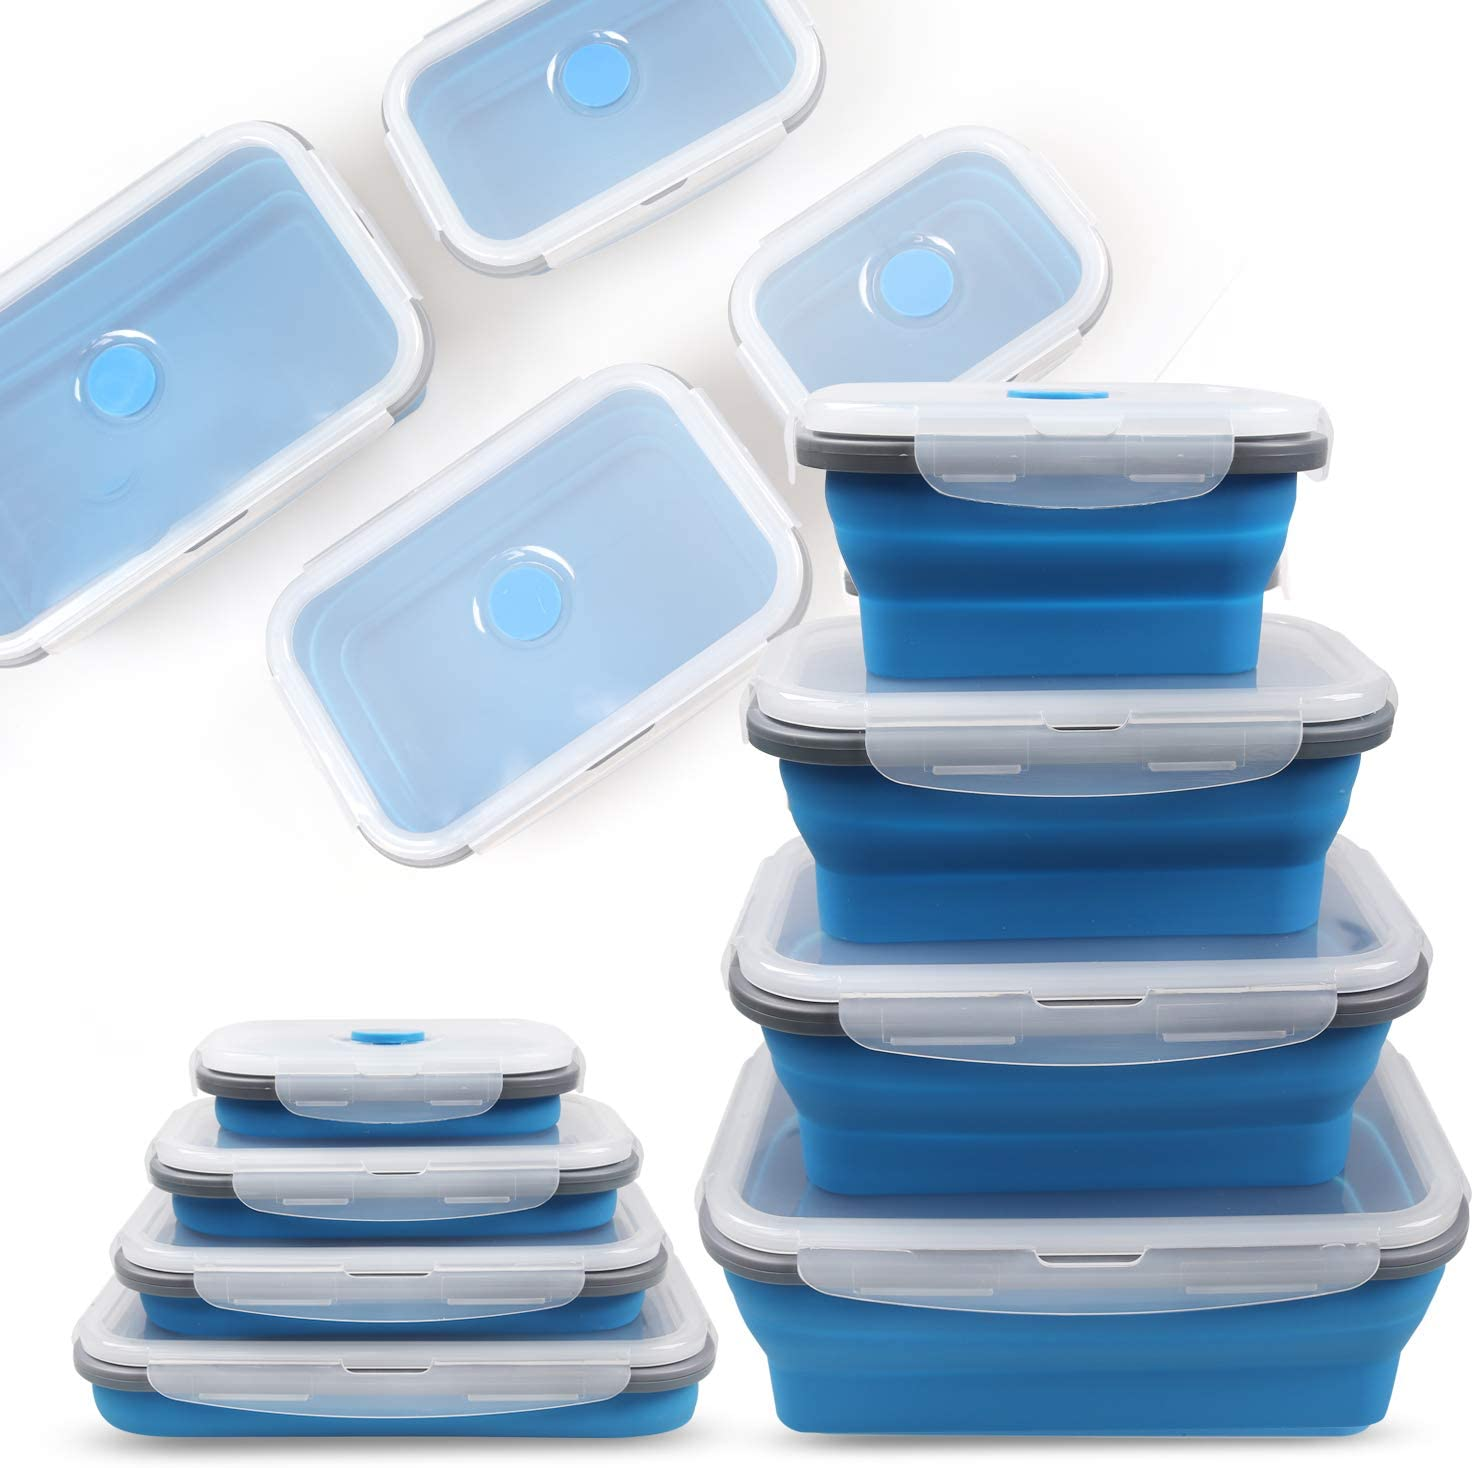 Collapsible Silicone Food Storage Container, Foldable Thin Bin design Box, Bento Lunch Boxes, Easy Cleaning, BPA Free, Microwave, Dishwasher Safe(4 Pack)